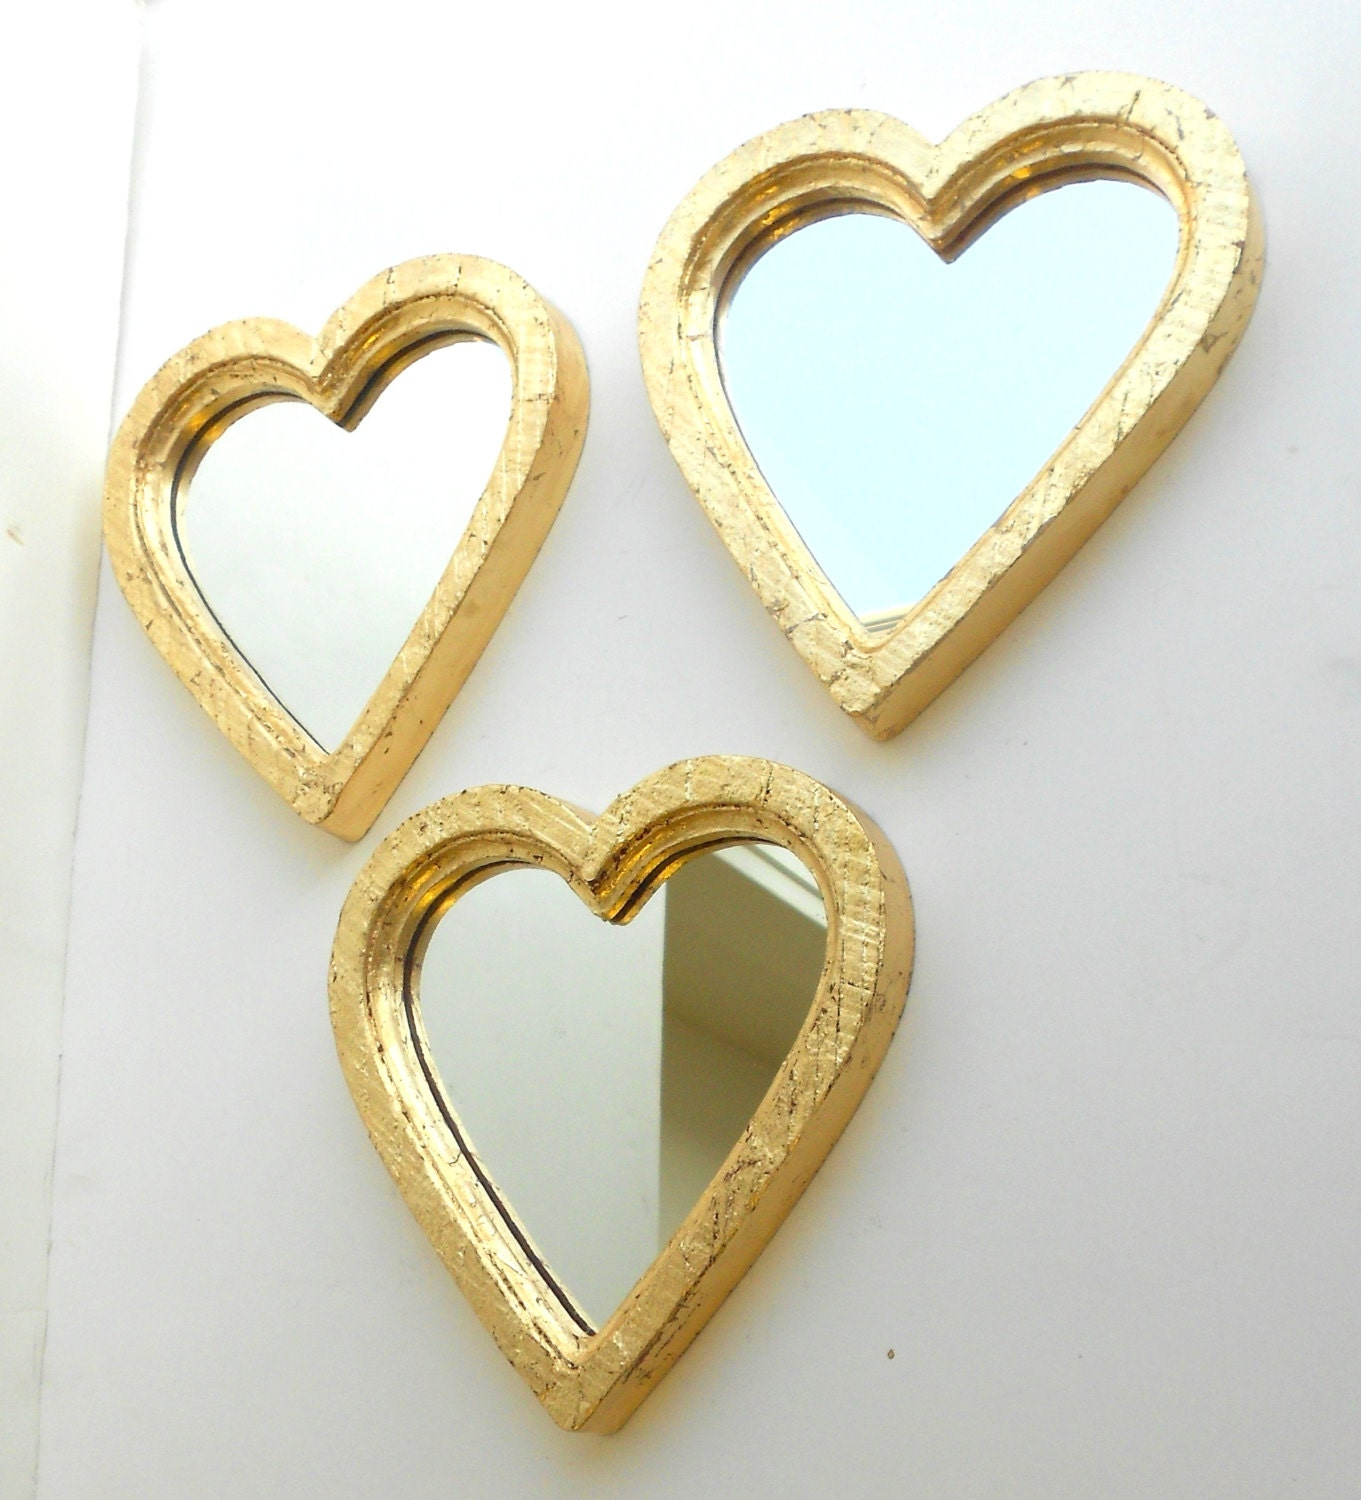 Gold Heart MirrorsHeart Shaped MirrorsVintage Style